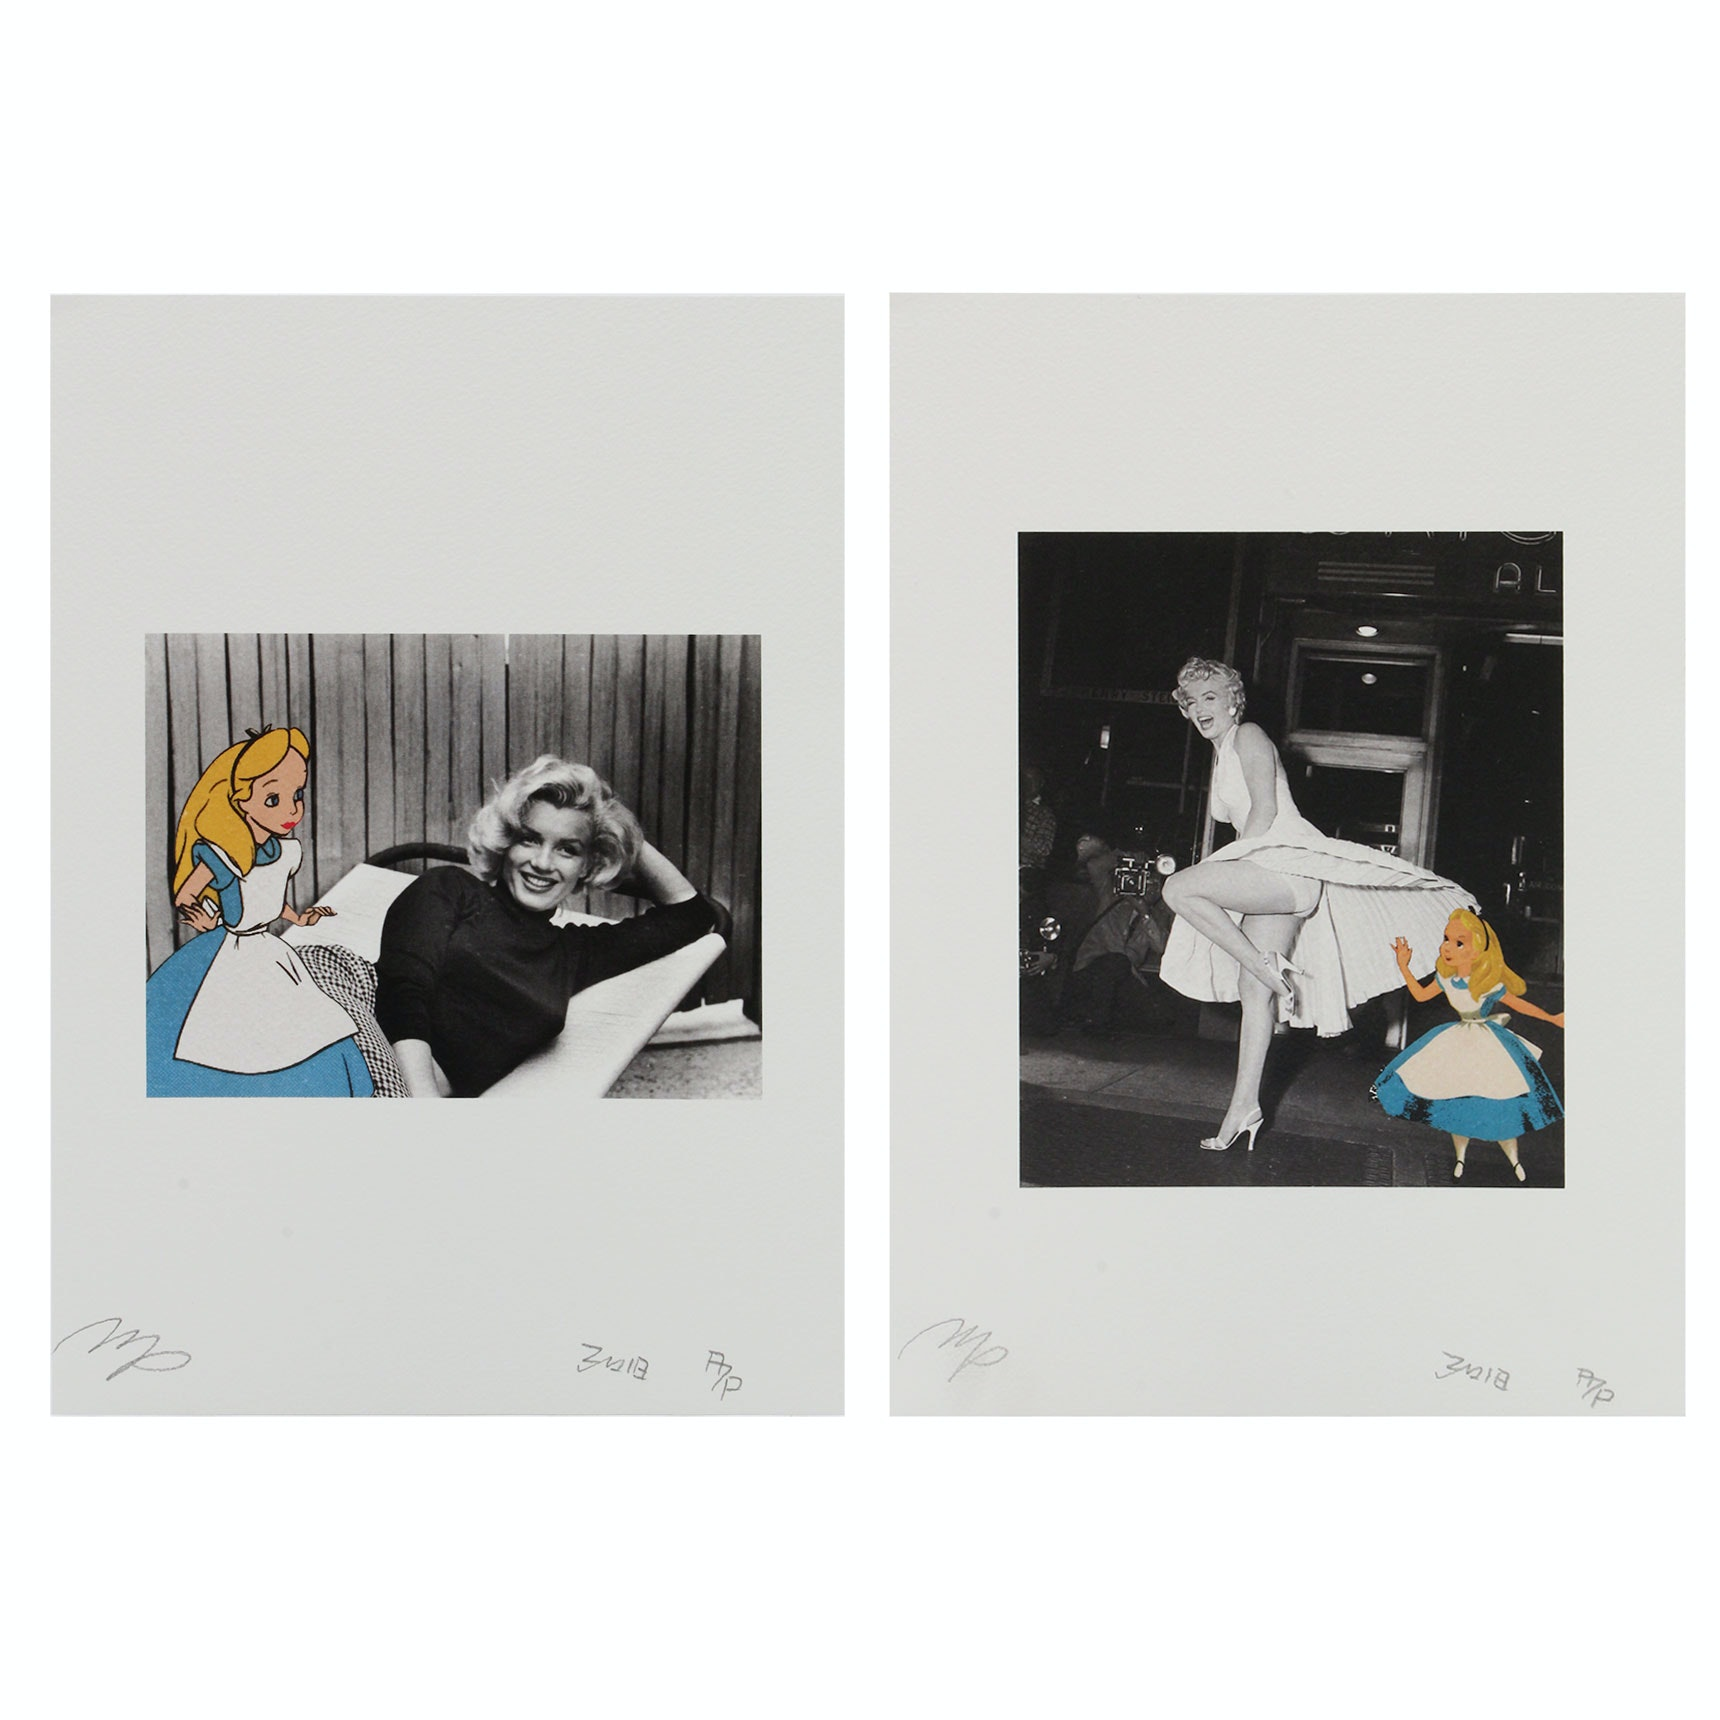 Marilyn Monroe Graphic Illustrations by Missing Piece